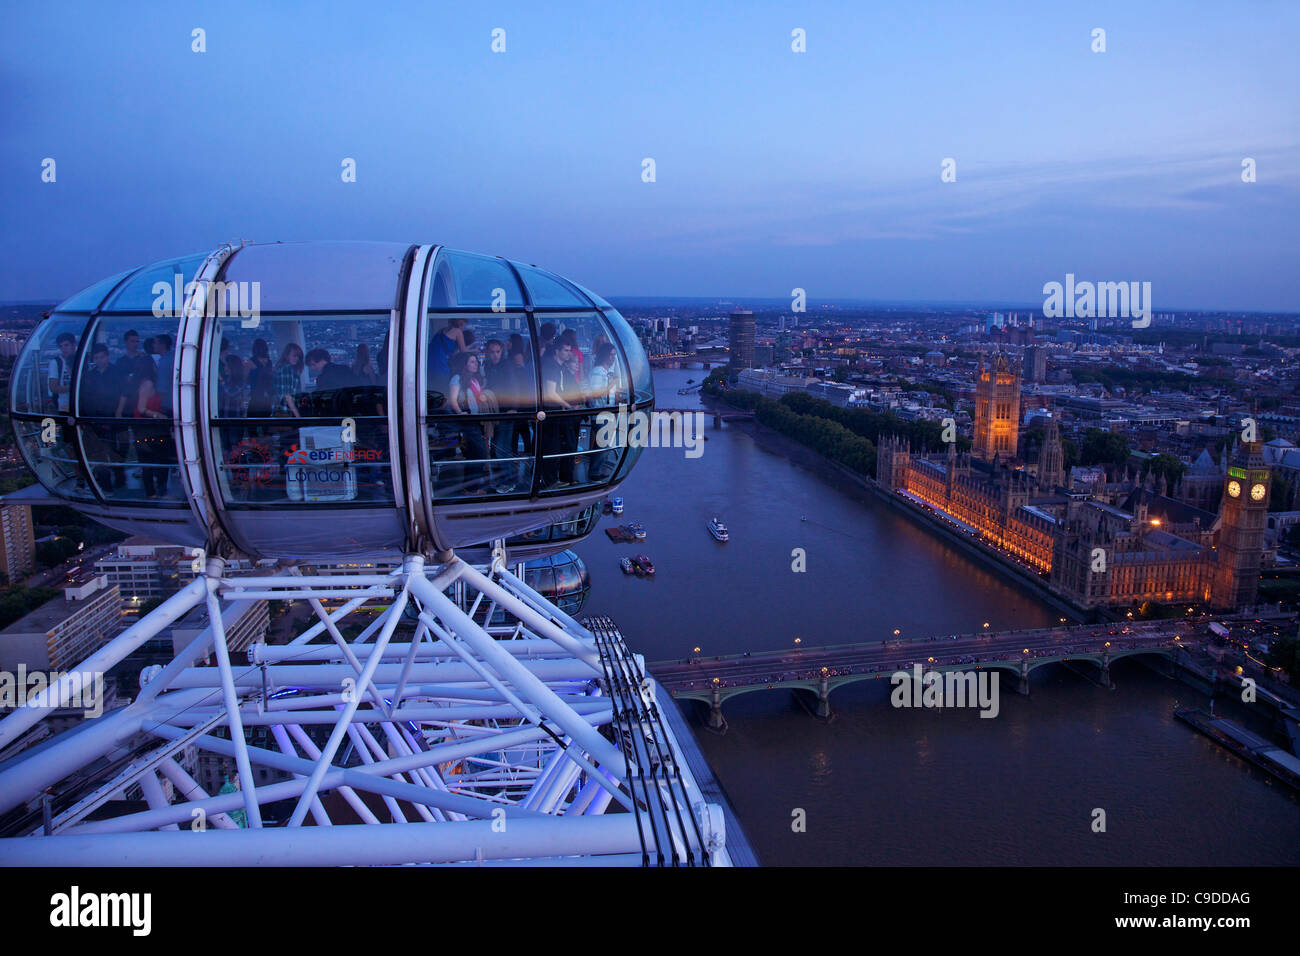 View of passenger pod capsule, Houses of Parliament, Big Ben and the River Thames from the London Eye at dusk,  - Stock Image